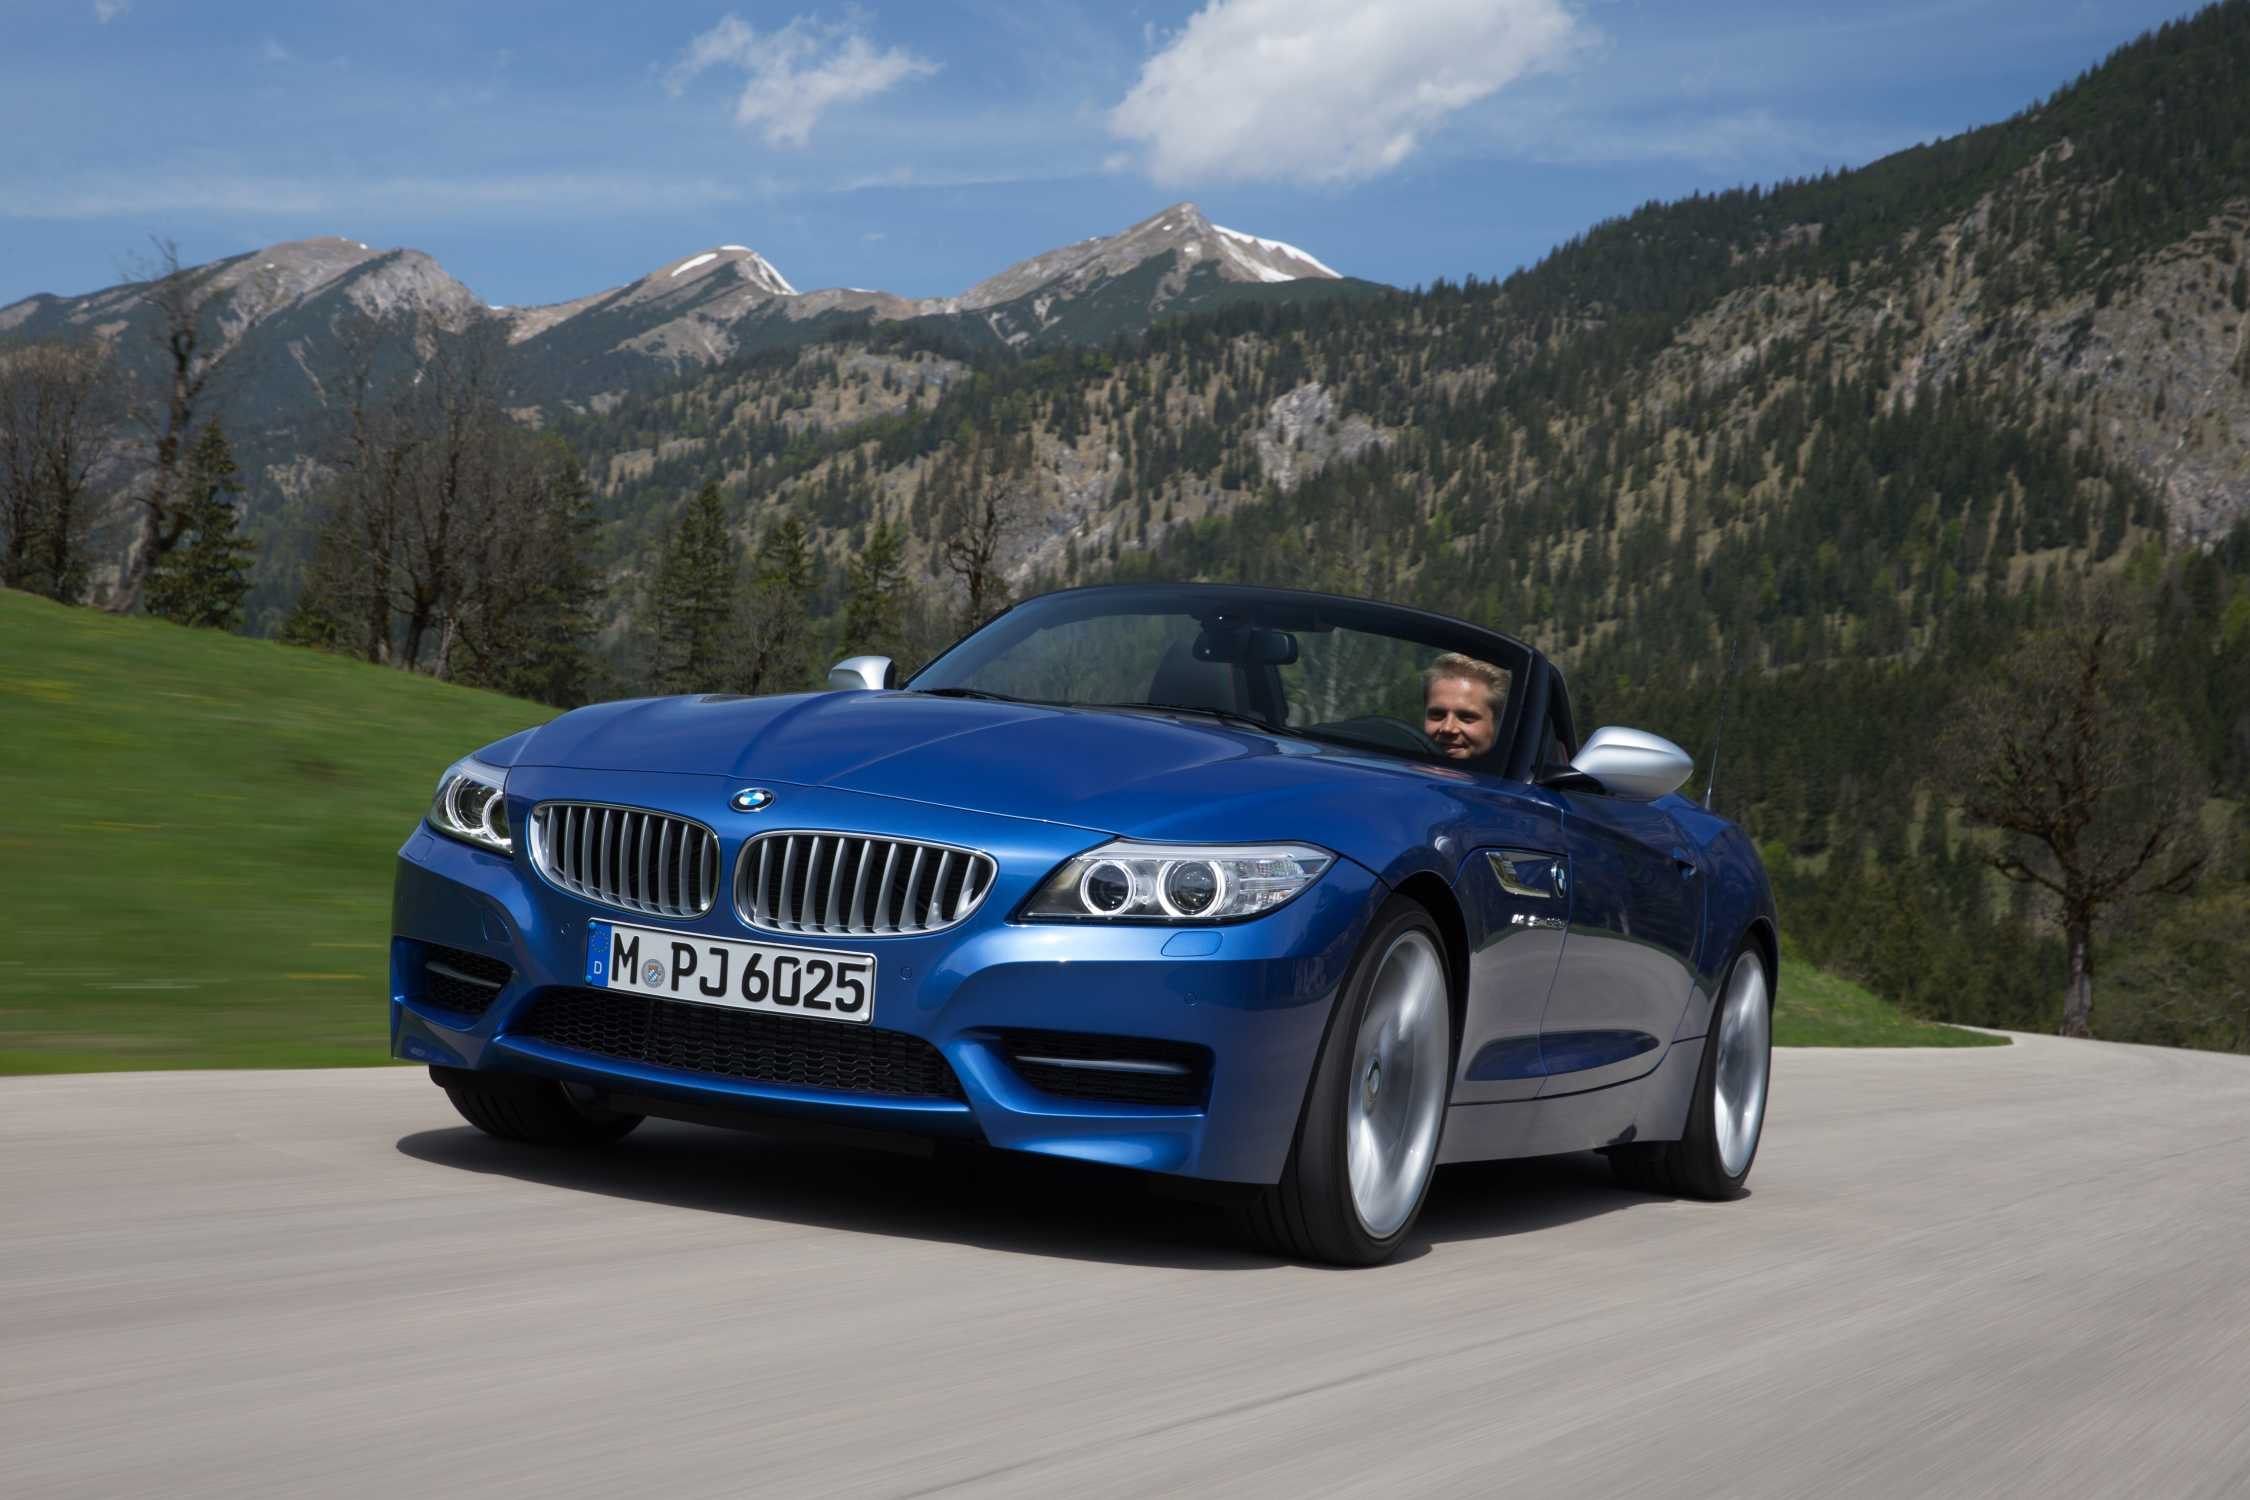 The New Bmw Z4 In Estoril Blue Metallic Additional Pictures